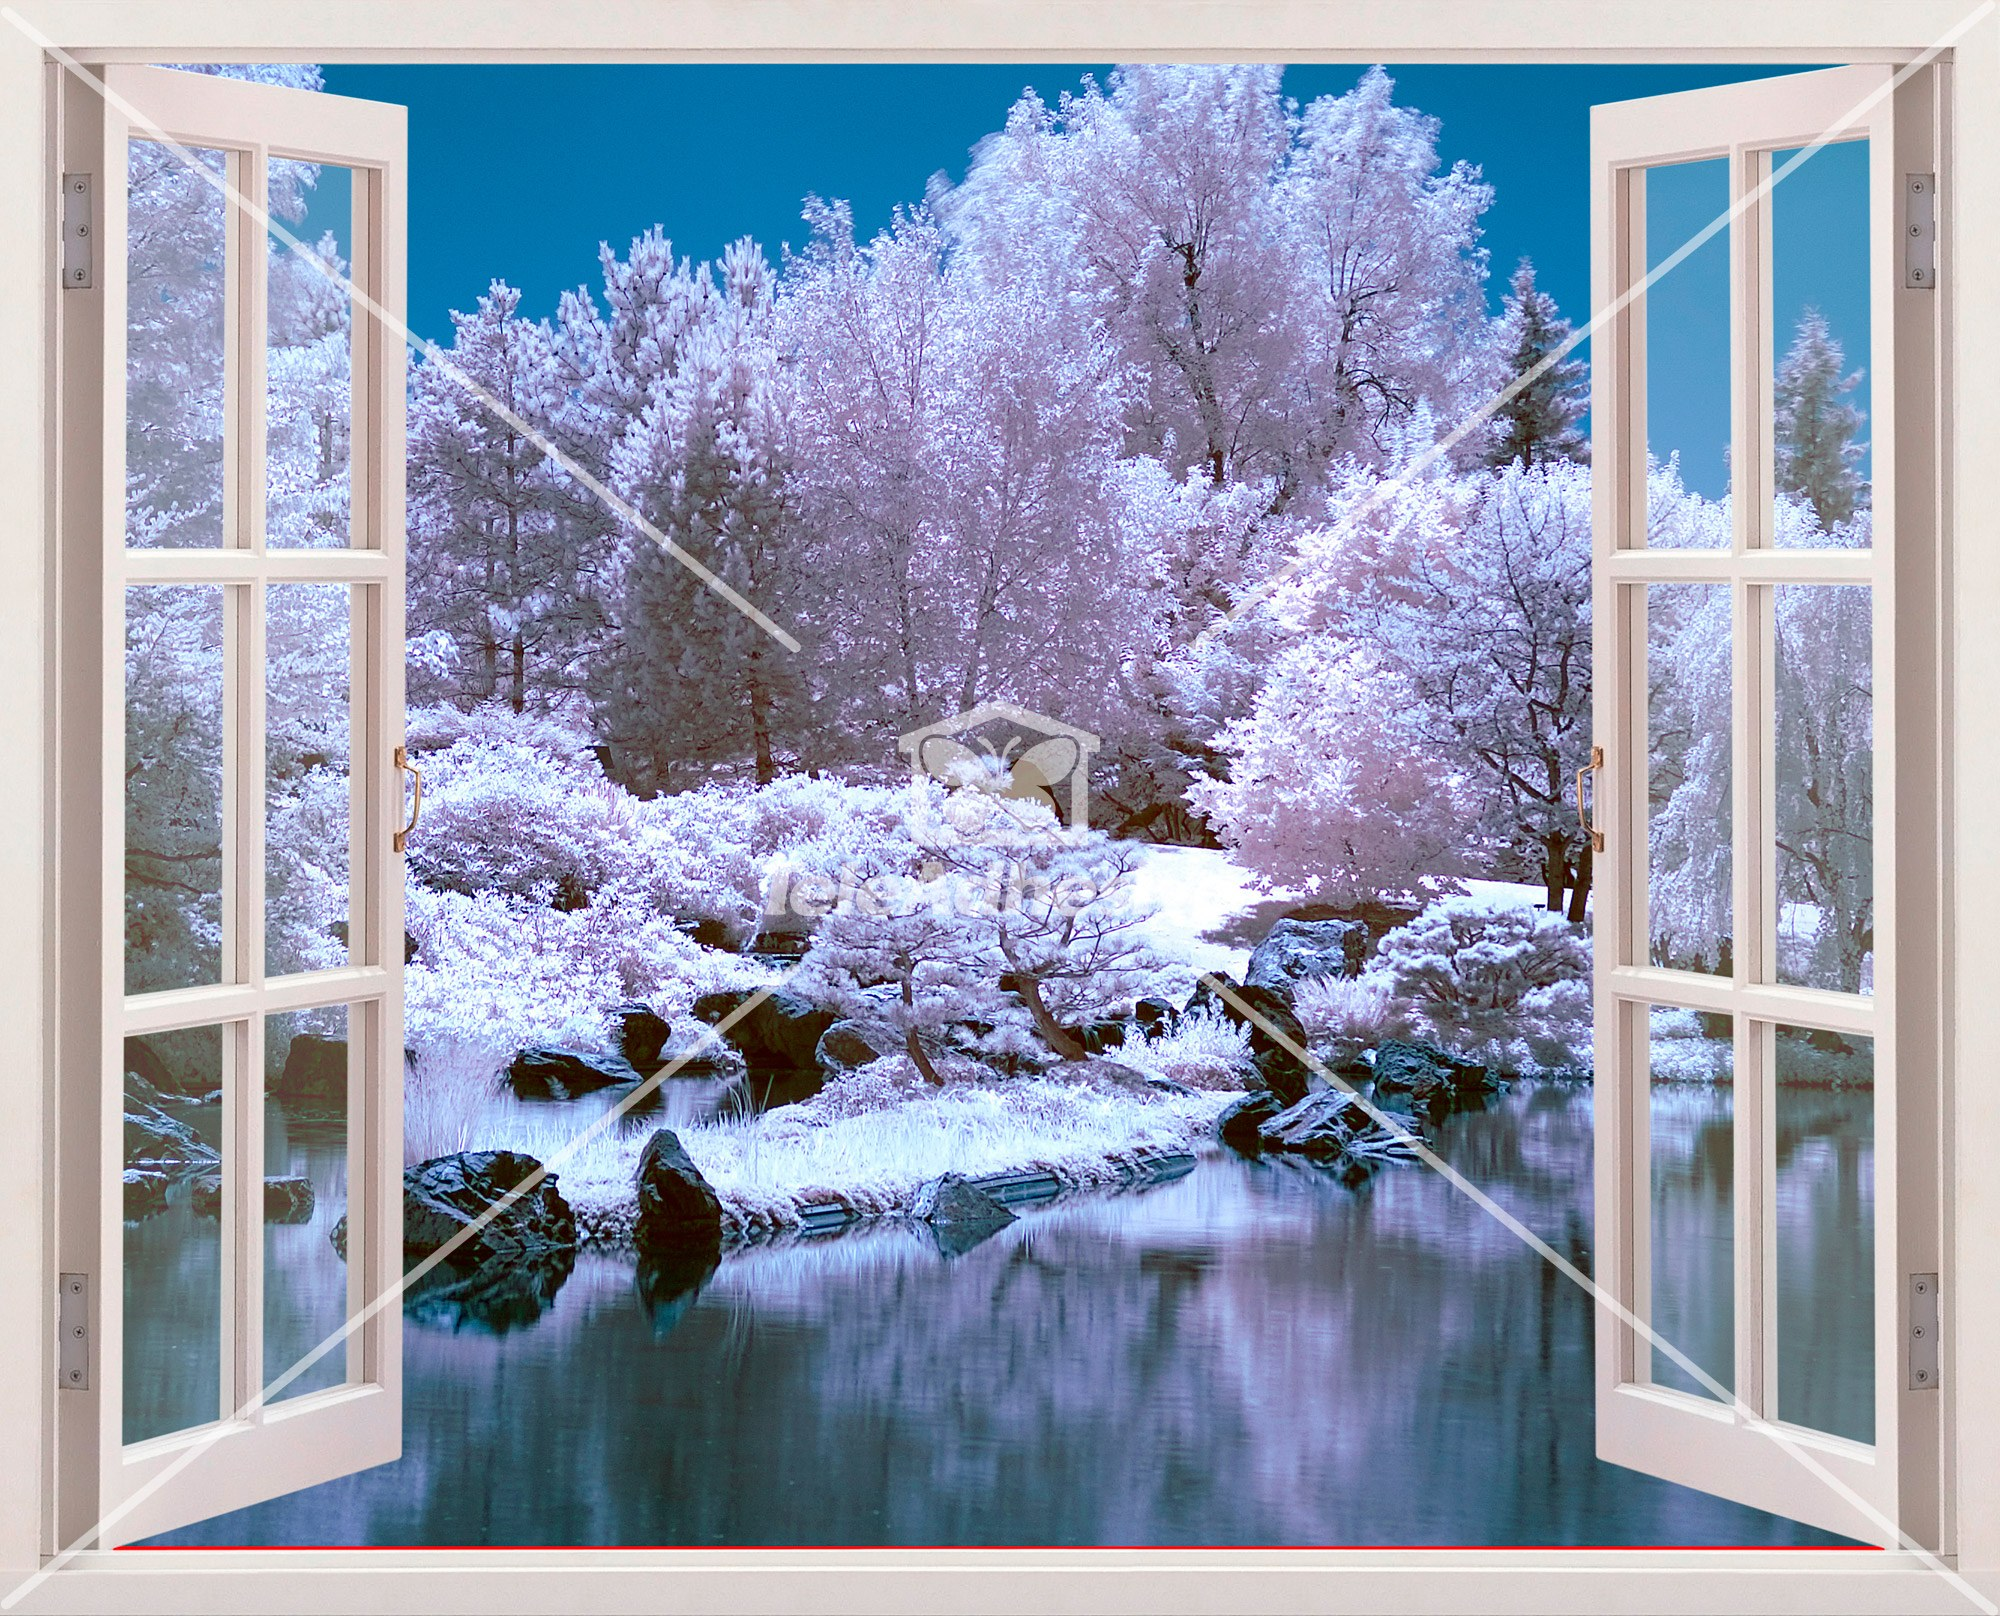 Vinilo 3d ventana bosque nevado for Vinilos decorativos pared 3d